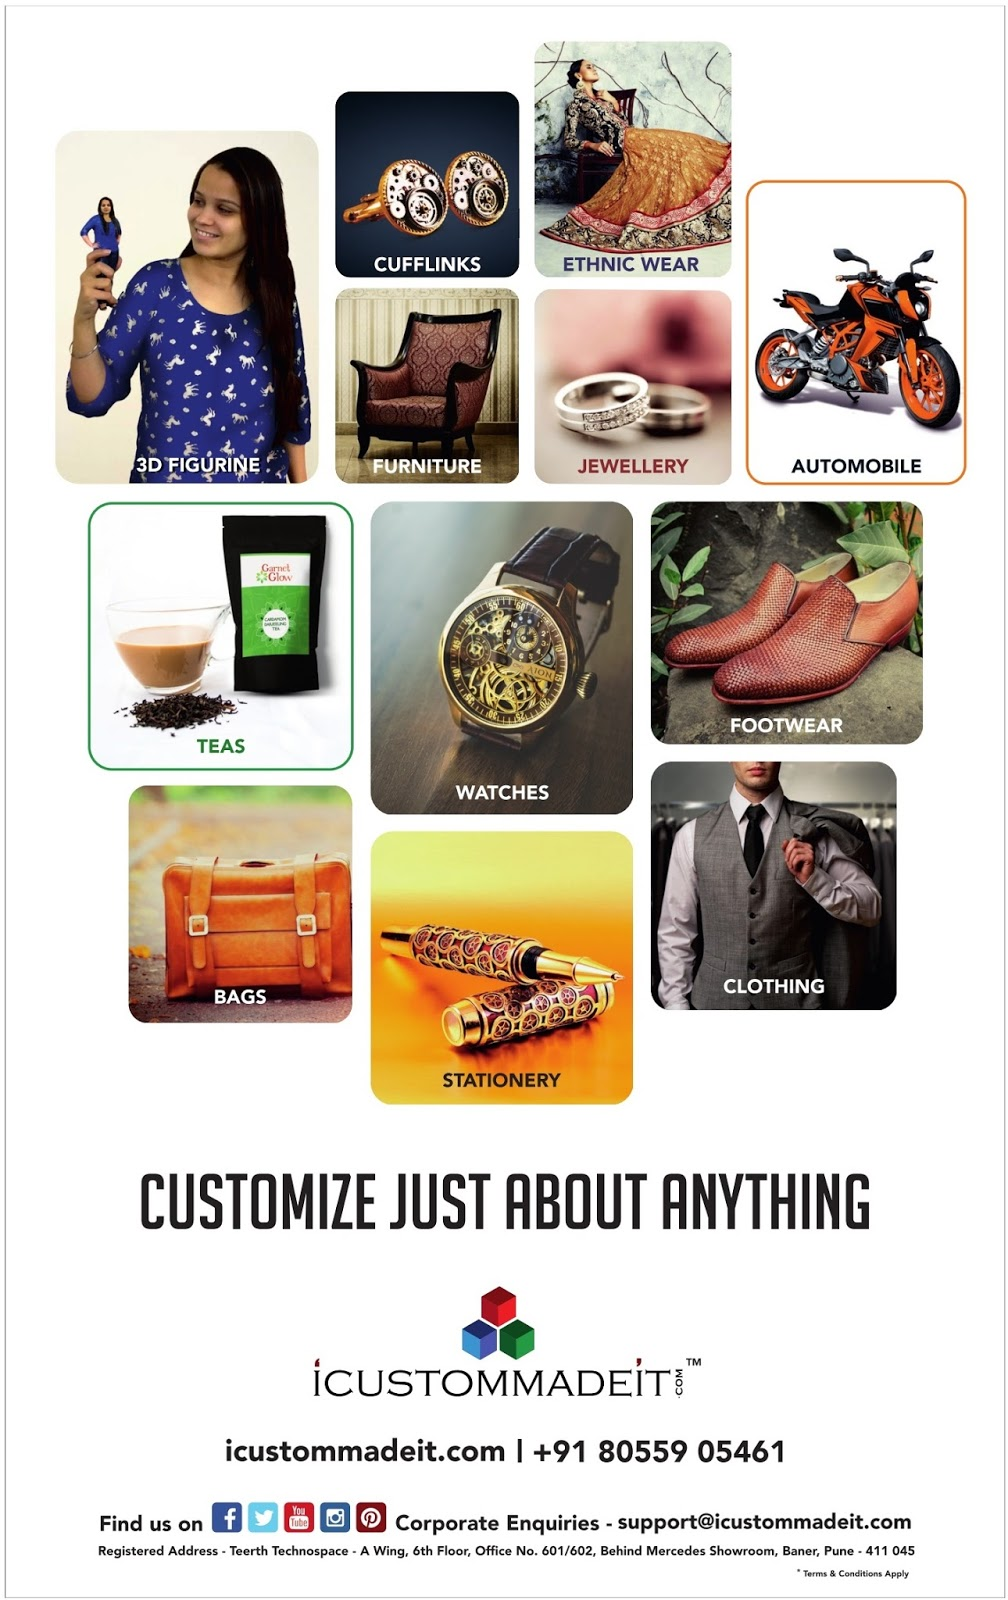 Customize every thing you want | First one in the world | April 2016 discount offer